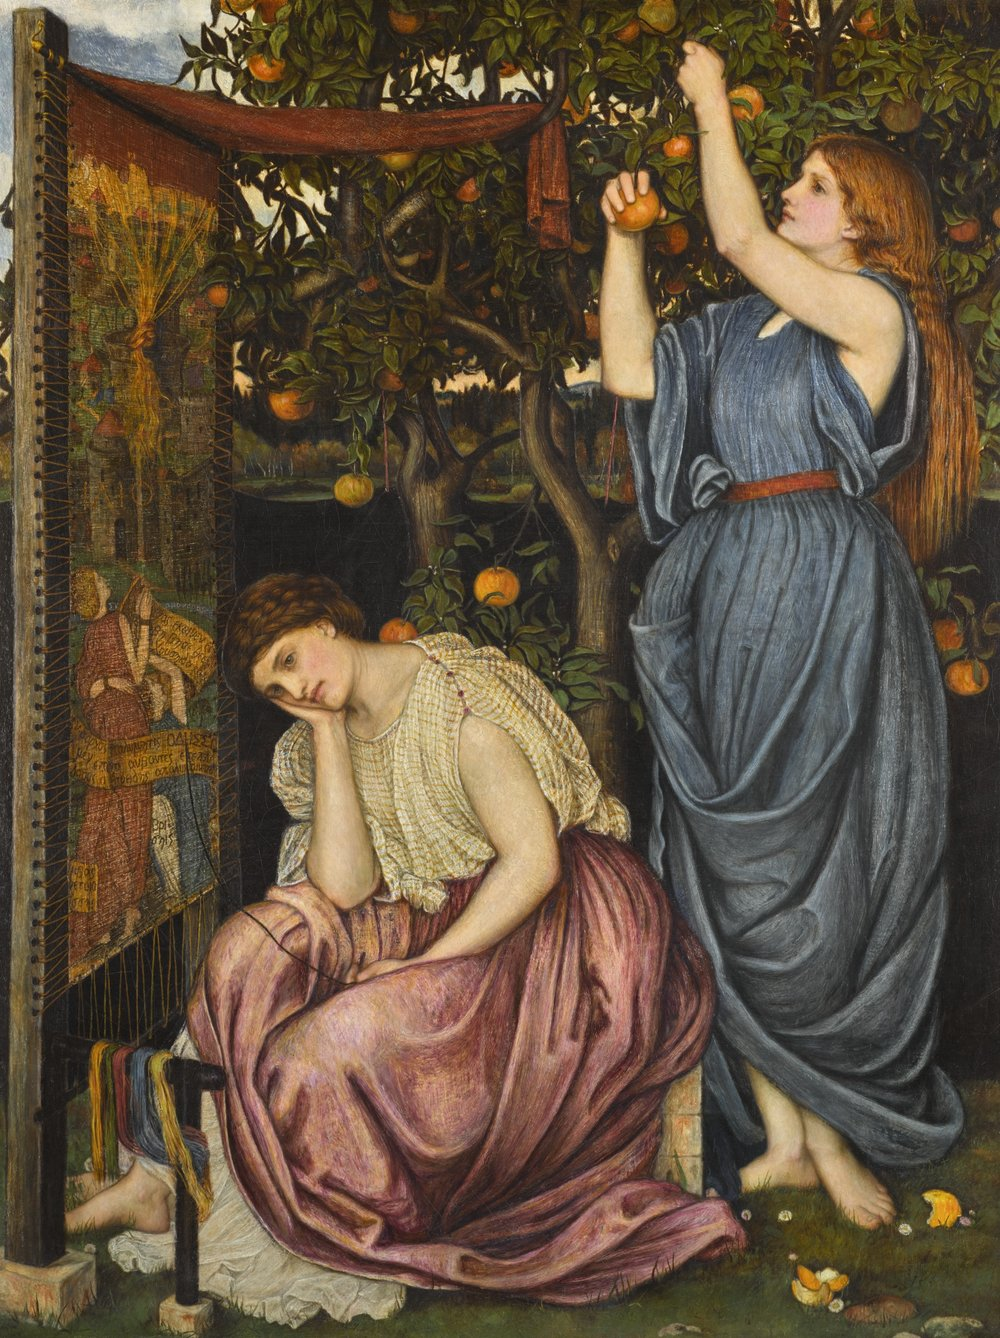 Penelope at her tapestry loom with a handmaiden picking apples. (Date: 1864; Medium: oil on canvas) https://commons.wikimedia.org/wiki/File:John_Roddam_Spencer_Stanhope_Penelope.jpg